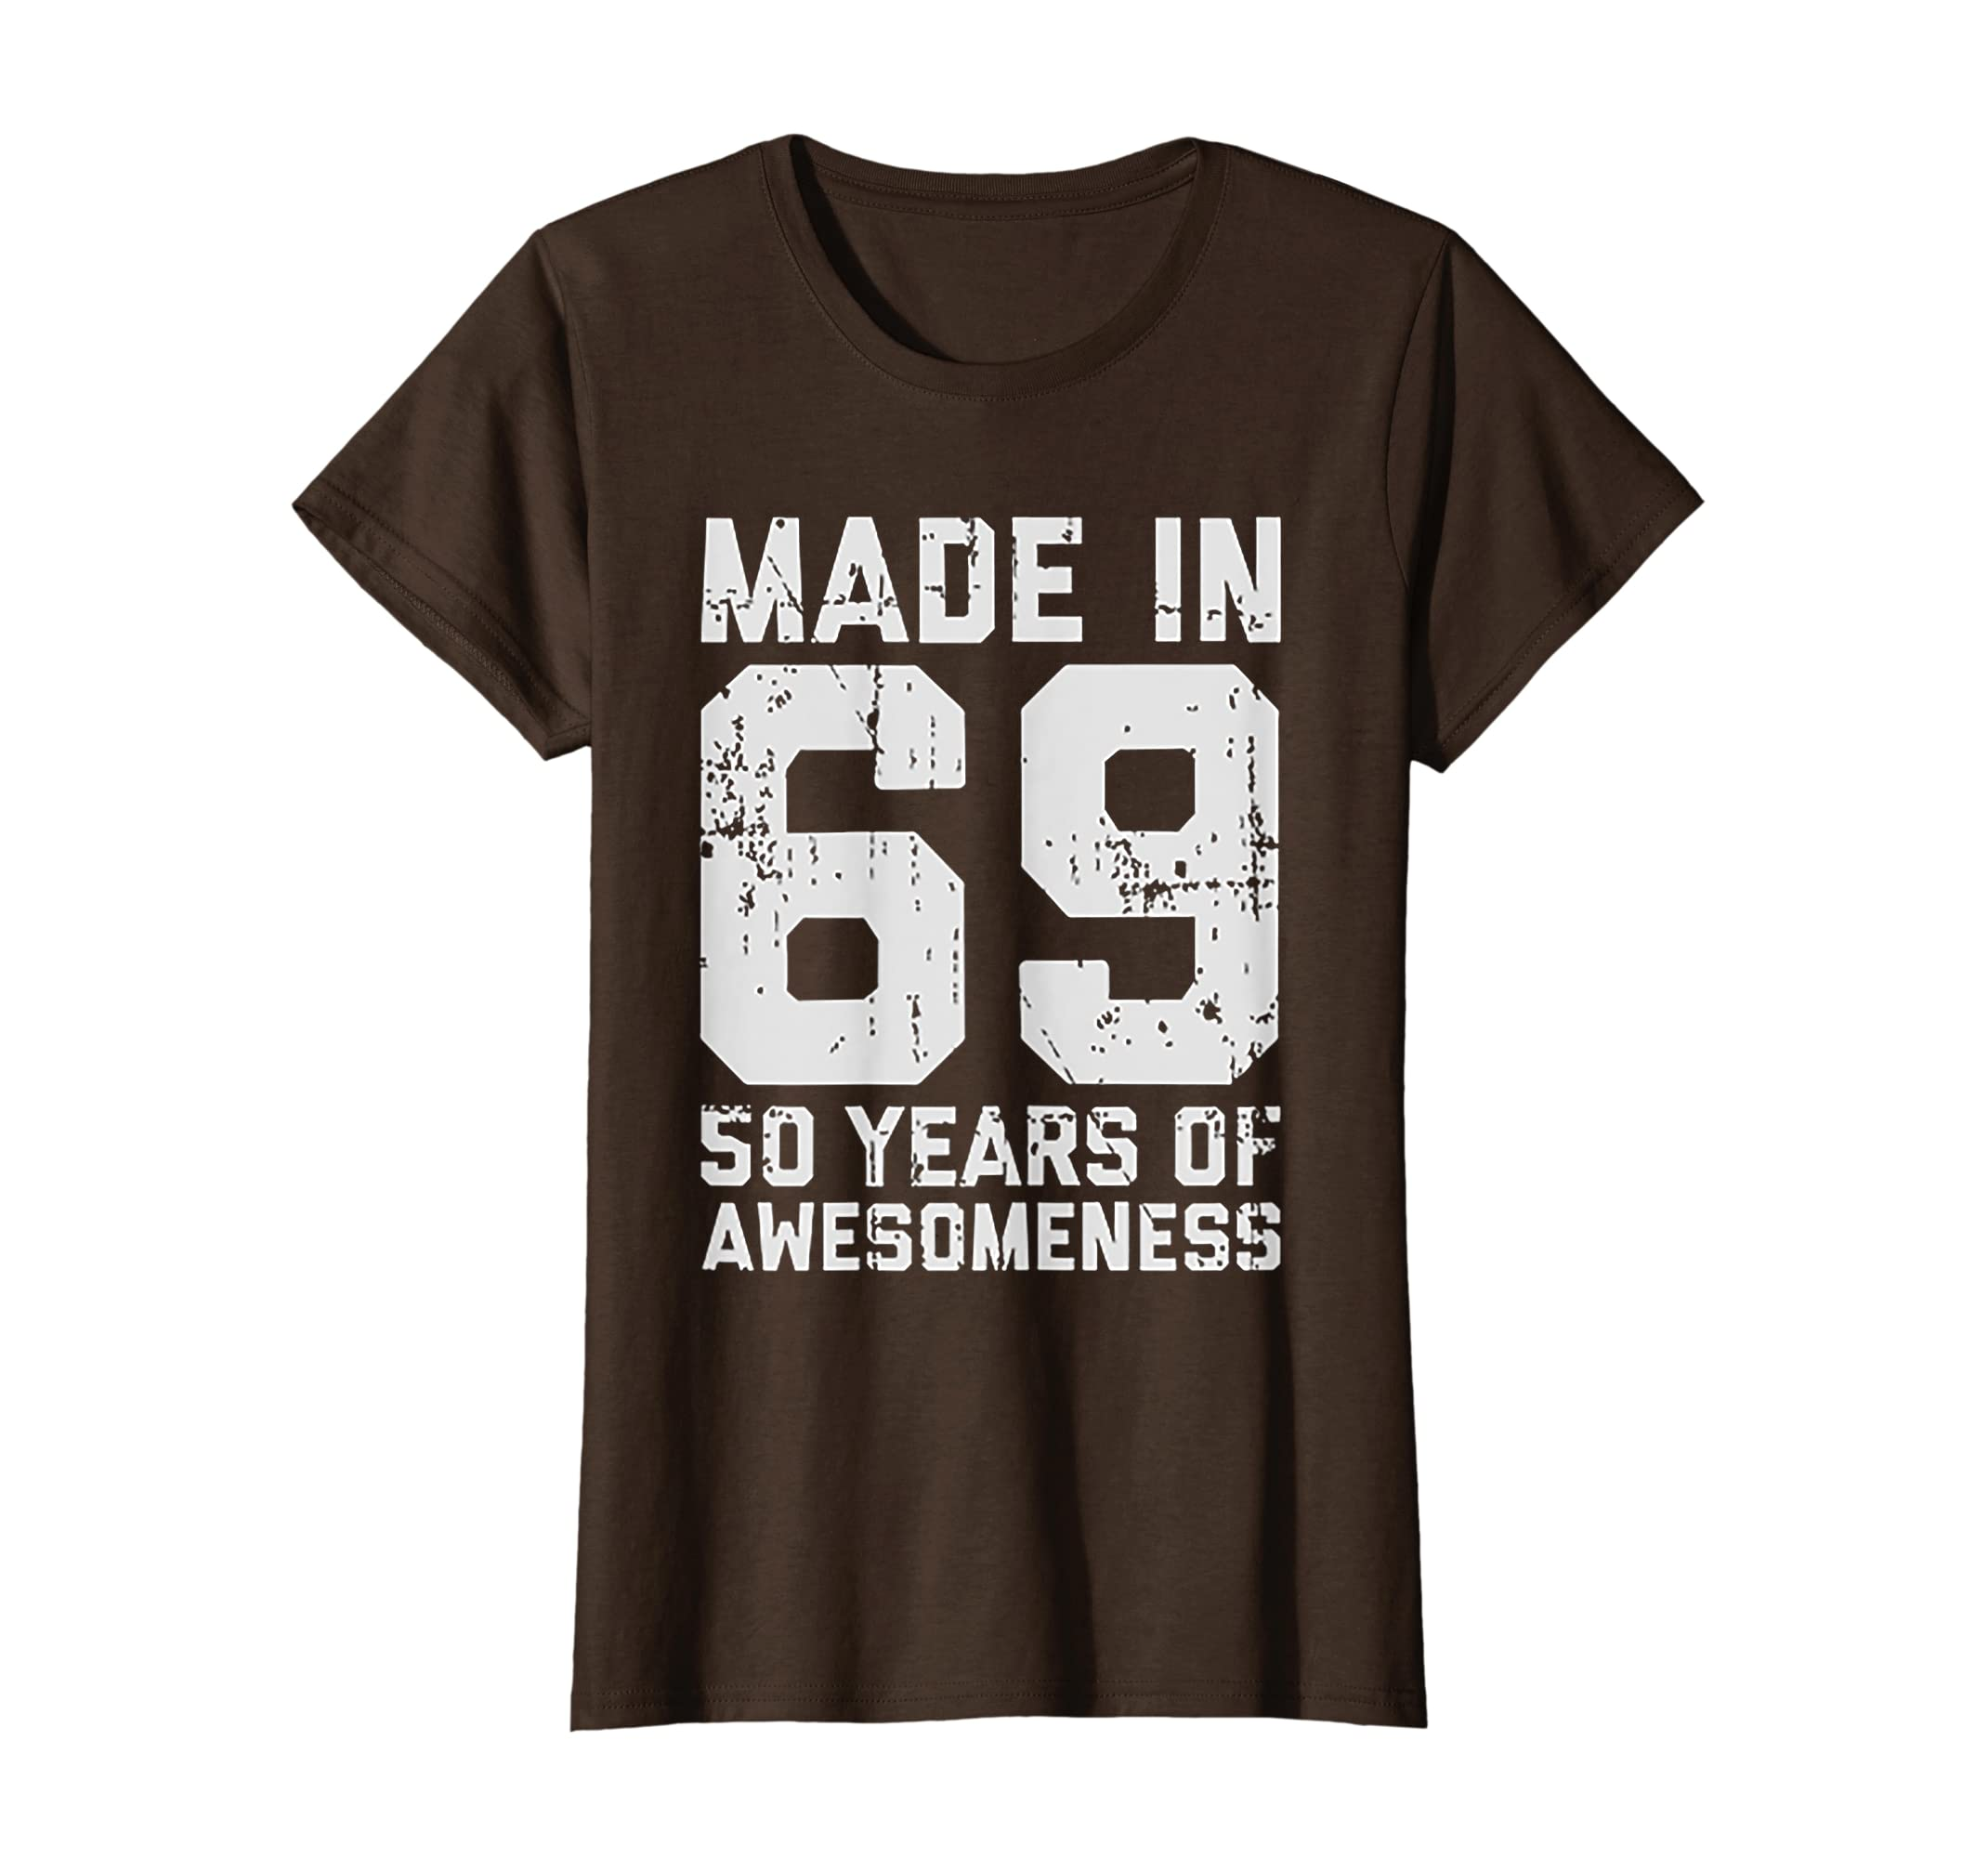 Amazon Made In 69 50 Years Of Awesomeness 50th Birthday TShirt Clothing